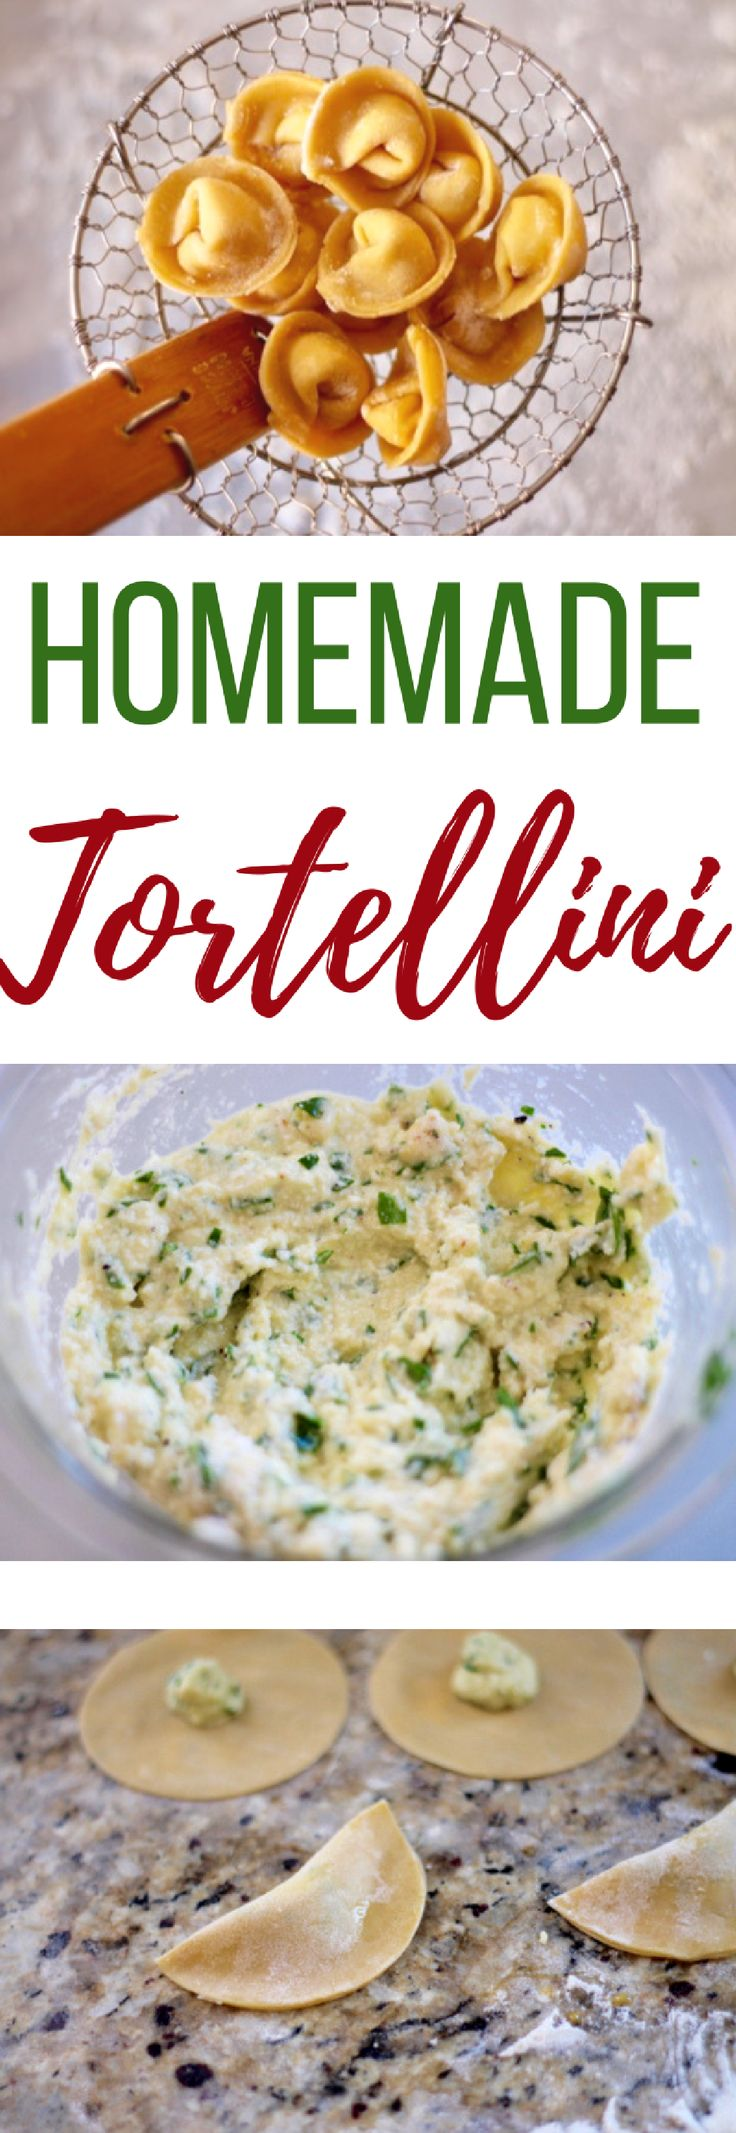 A step-by-step guide to making your very own Homemade Tortellini. While labor intensive, it's a lot of fun and absolutely worth it! |sarahnspice.com